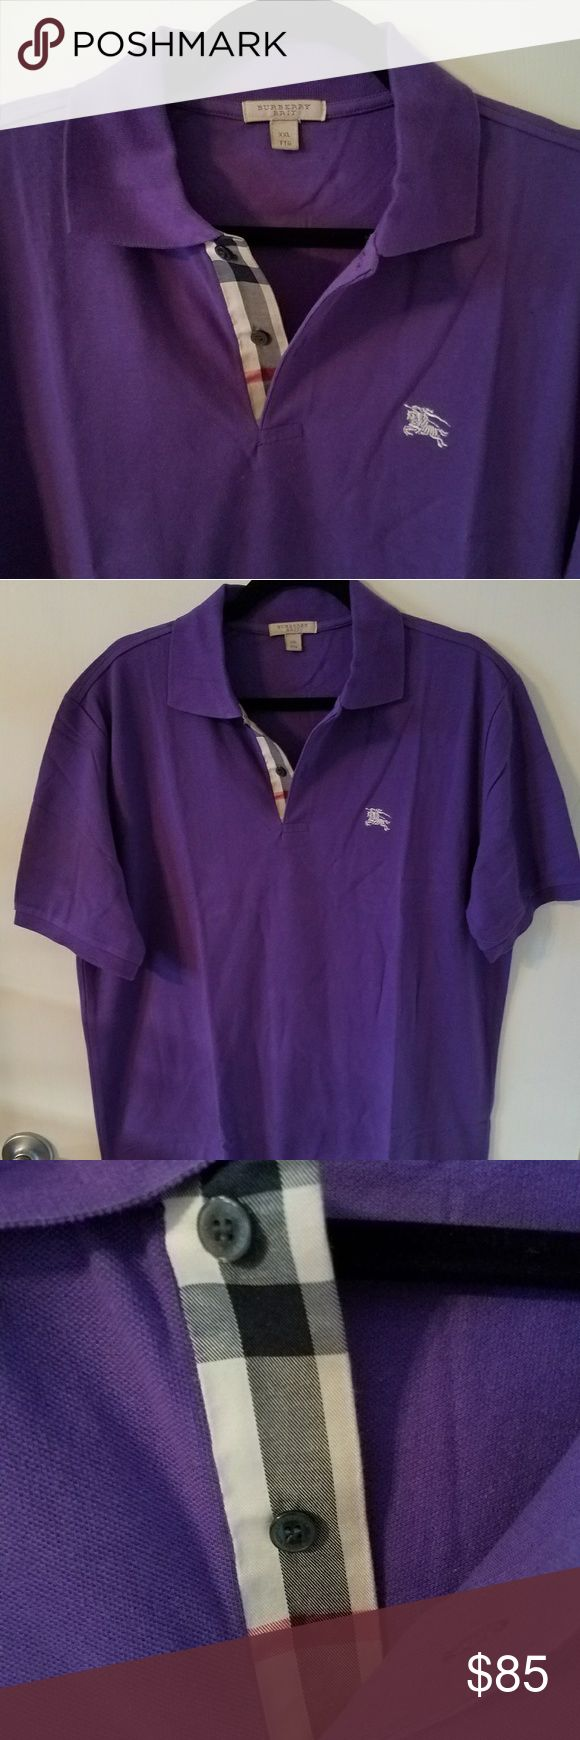 "BURBERRY Brit Mens polo XL BRAND NEW Purple 100% Authentic Burberry Brit polo Shirt.  XXL tag But That's in UK Sizing, but Equal to USA XL  BRAND NEW with no tags.  23.7"" Armpit to armpit. Please compare.  Better Price through PPal Text me  Eric 925-984-1655  Low-ball offers will be ignored, sorry no trades  If you have an offer, make an offer, don't comment and ask if I'll take a certain amount.  Thanks Burberry Shirts"